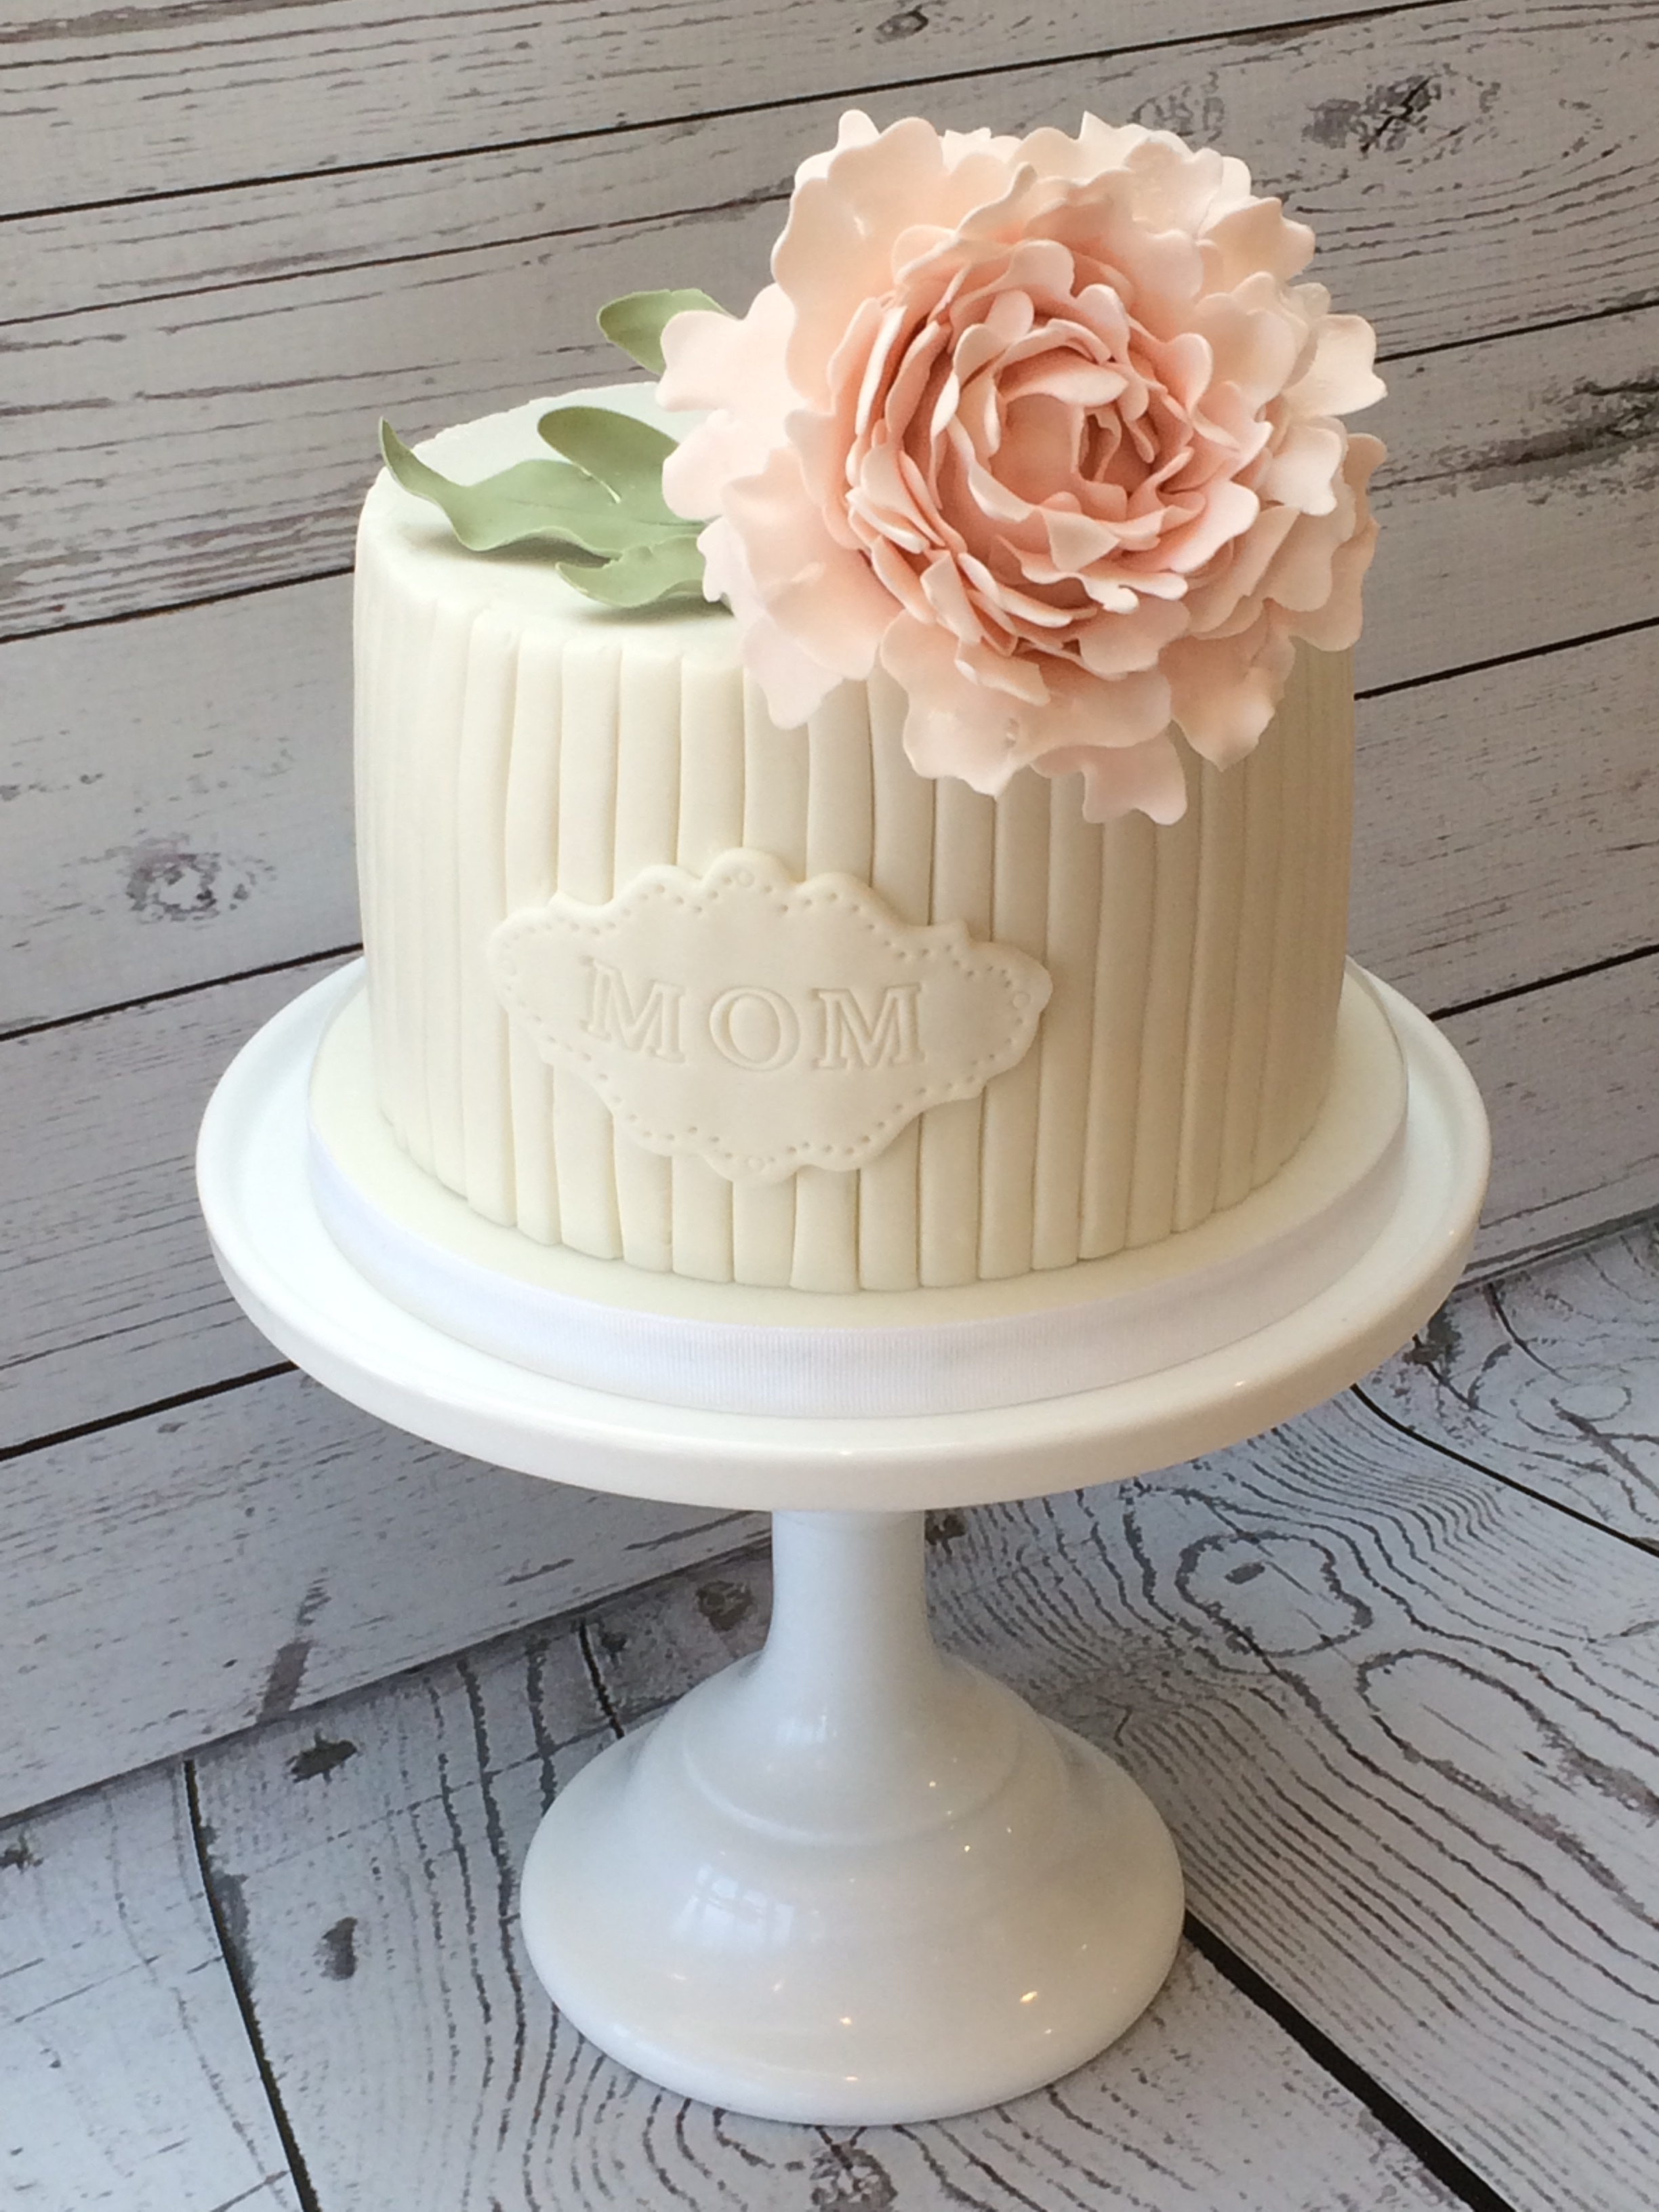 White-on-white Peony Cake (inspired by an original design by Couture Cupcakes)